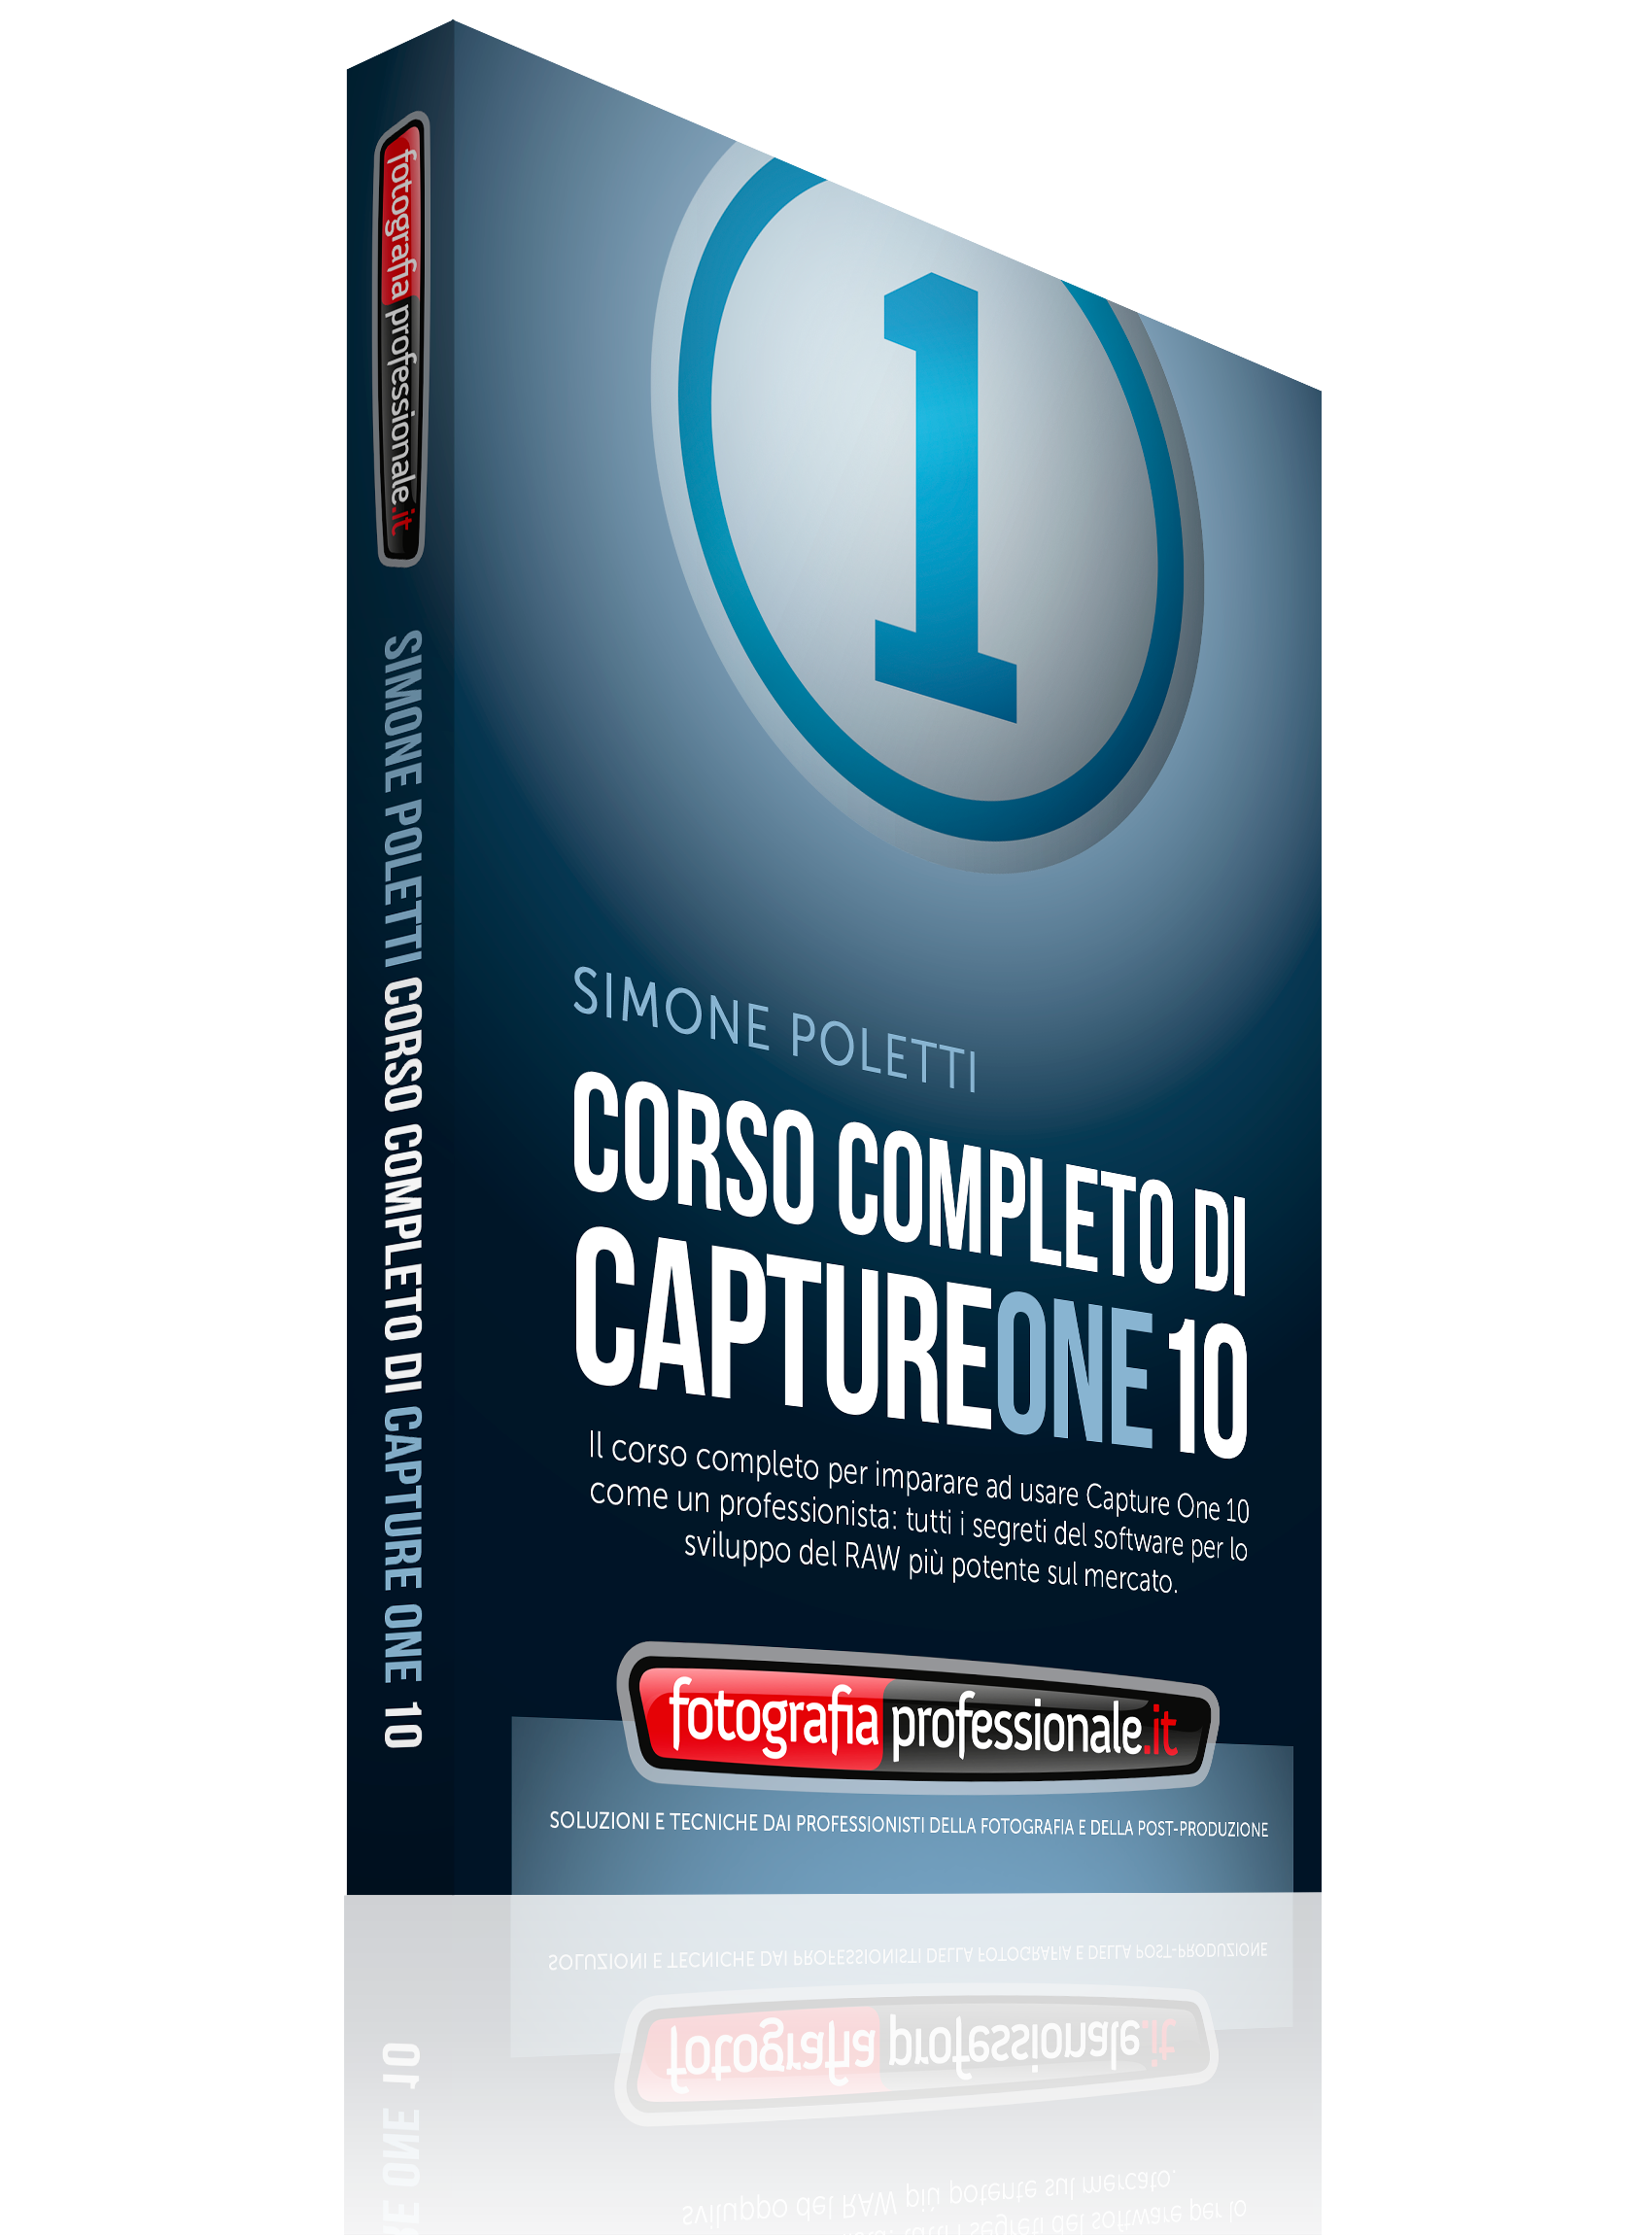 Corso Completo di Capture One 10